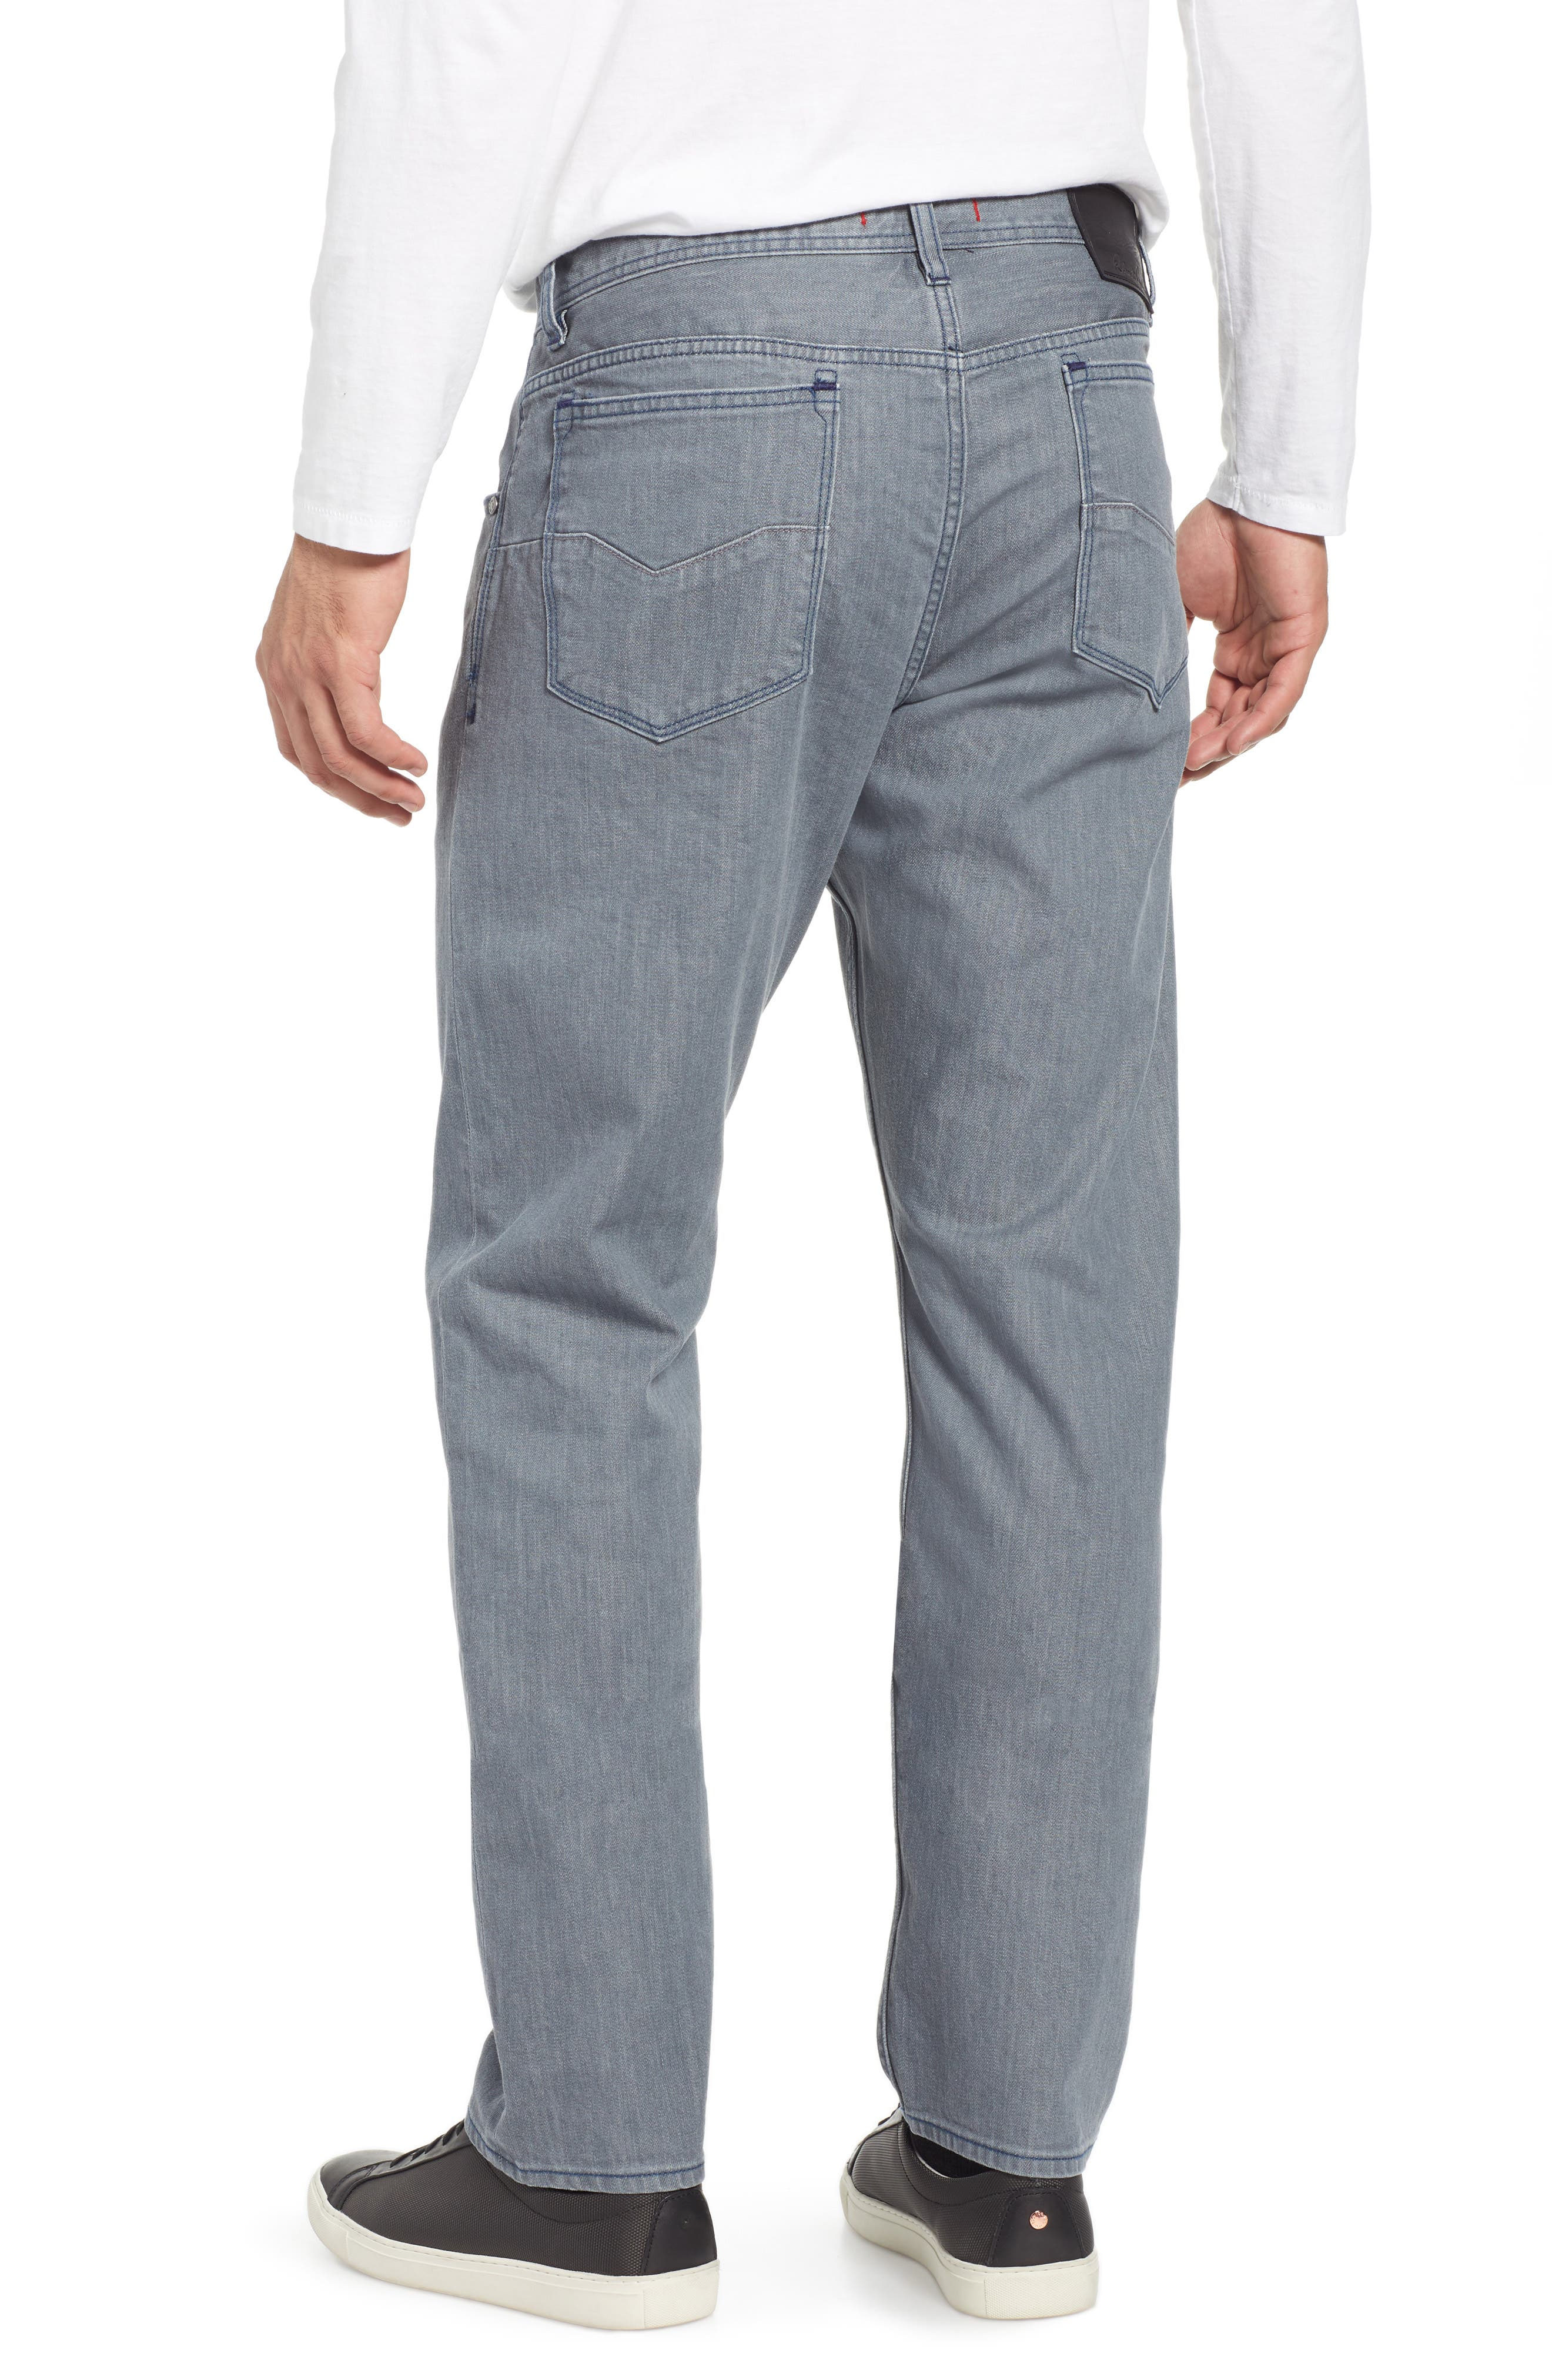 Bray Tailored Straight Leg Jeans,                             Alternate thumbnail 2, color,                             GREY